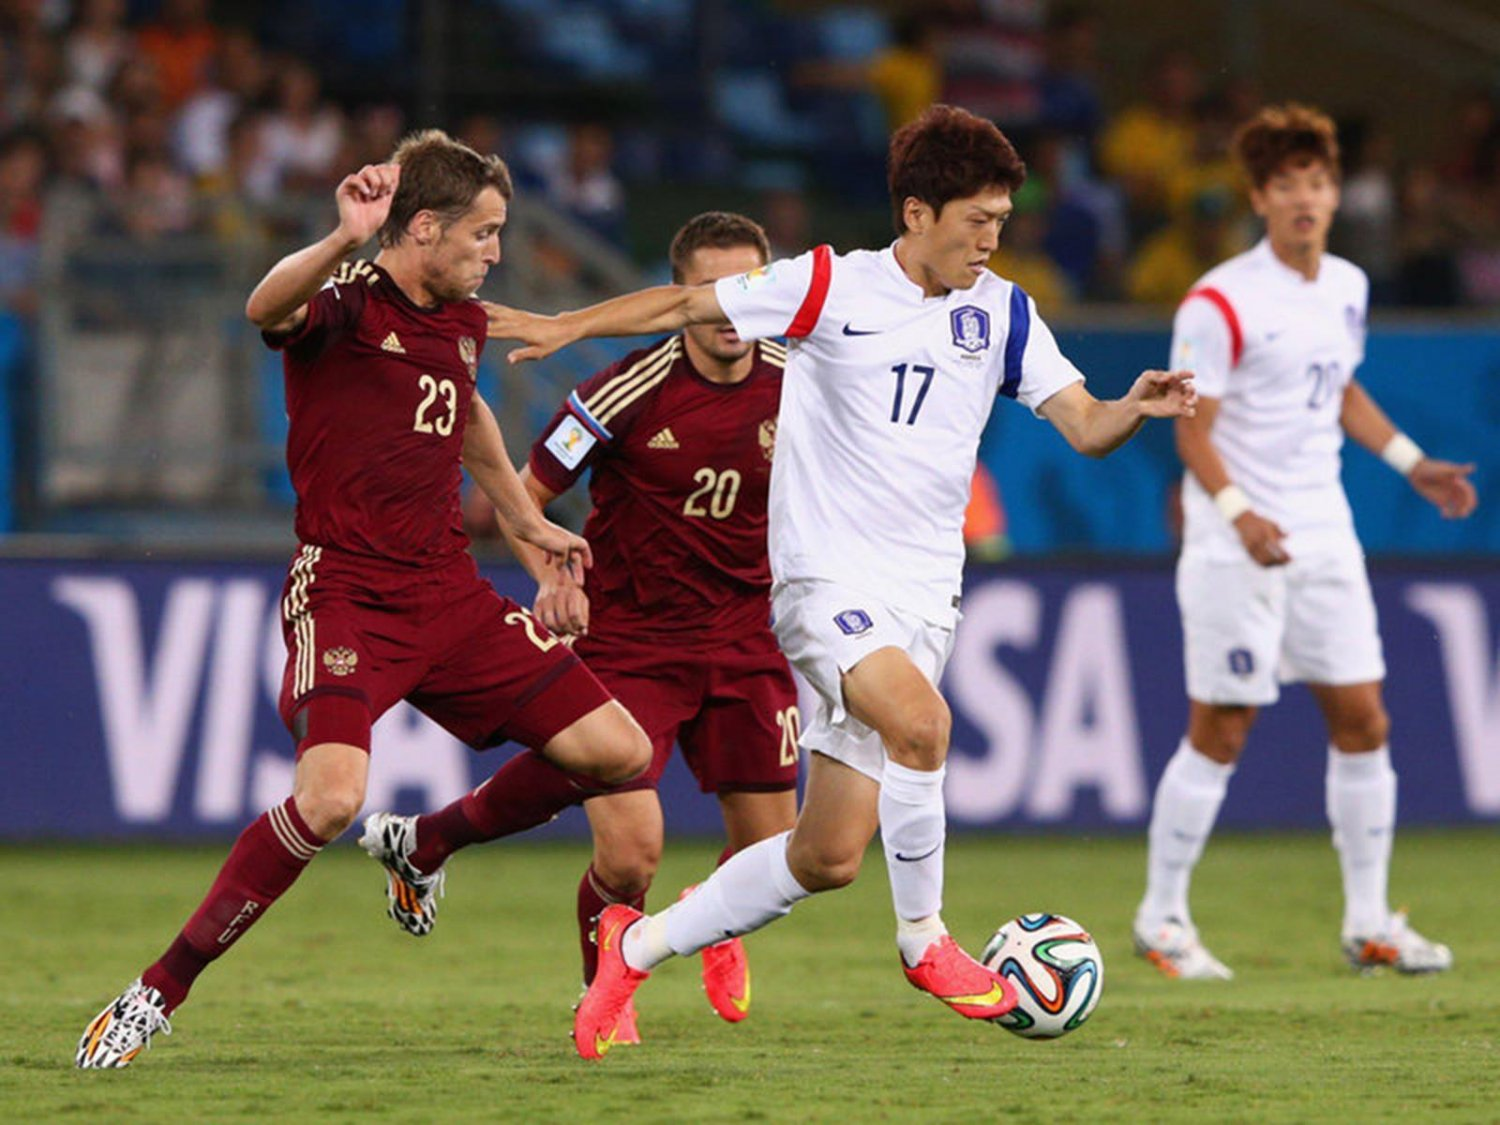 298 - 8 X 6 Photo - Football - FIFA World Cup 2014 - Russia V South Korea - Lee  Chung  Yong